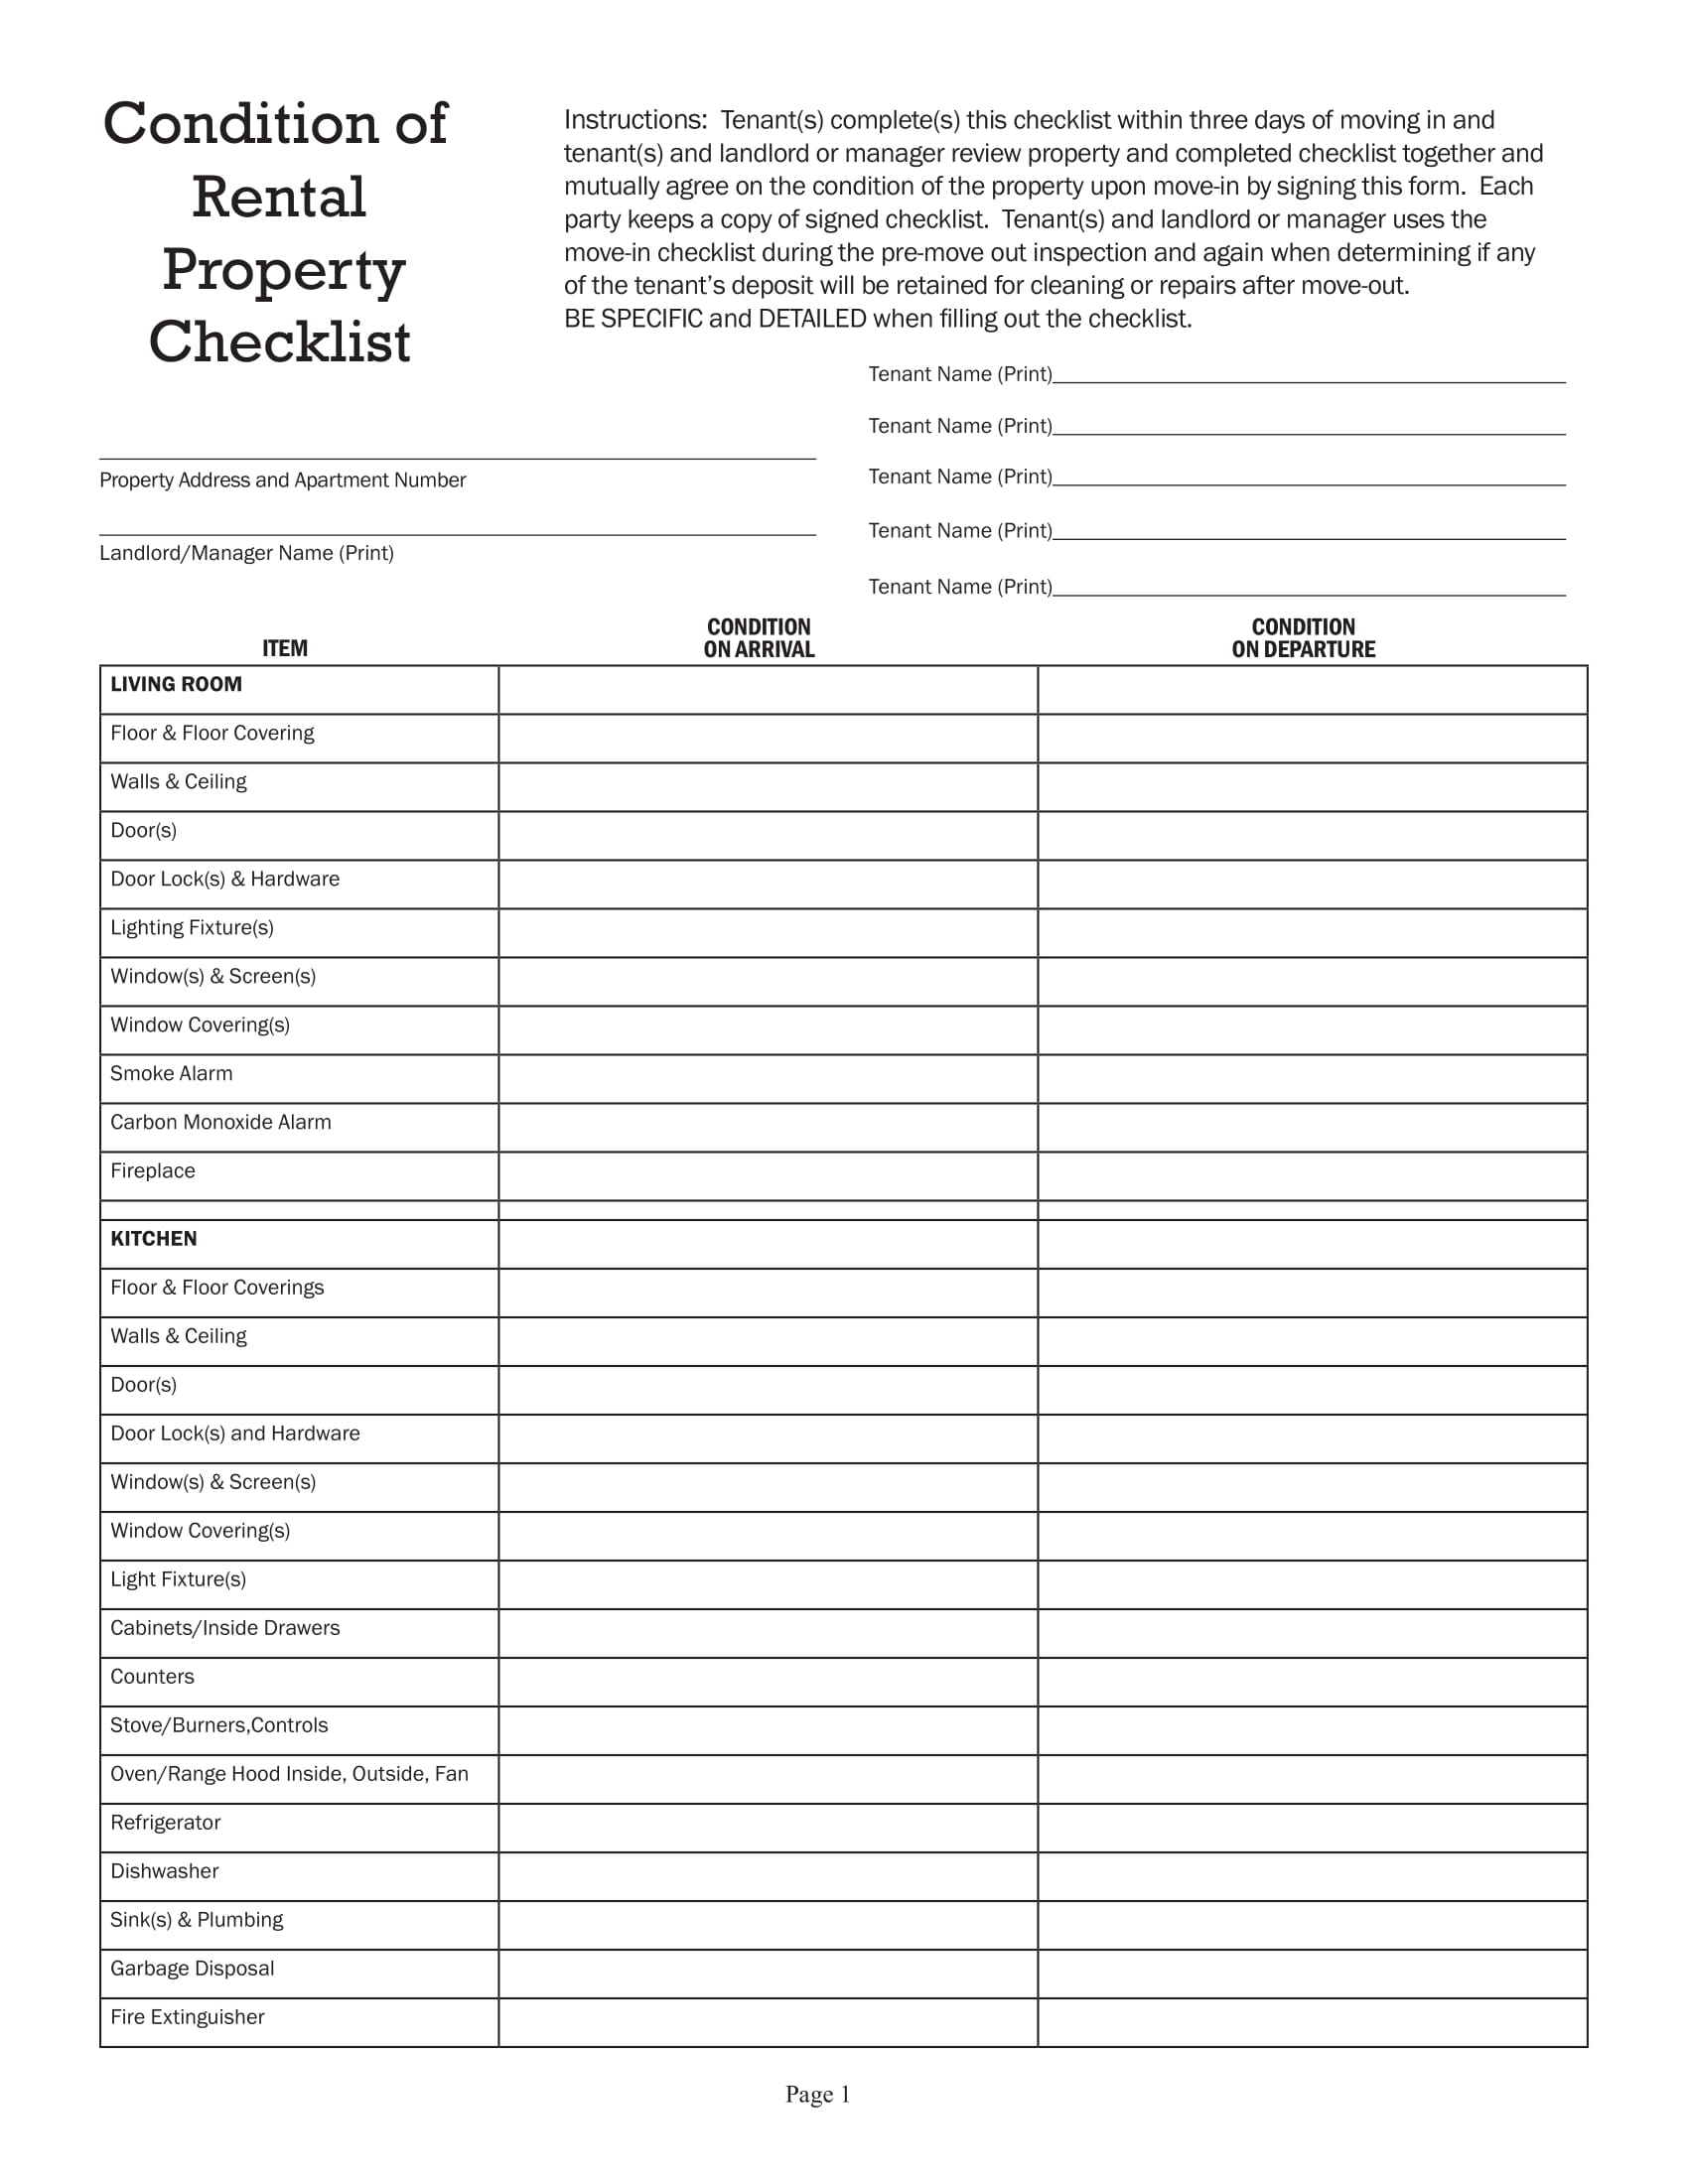 rental condition checklist 11